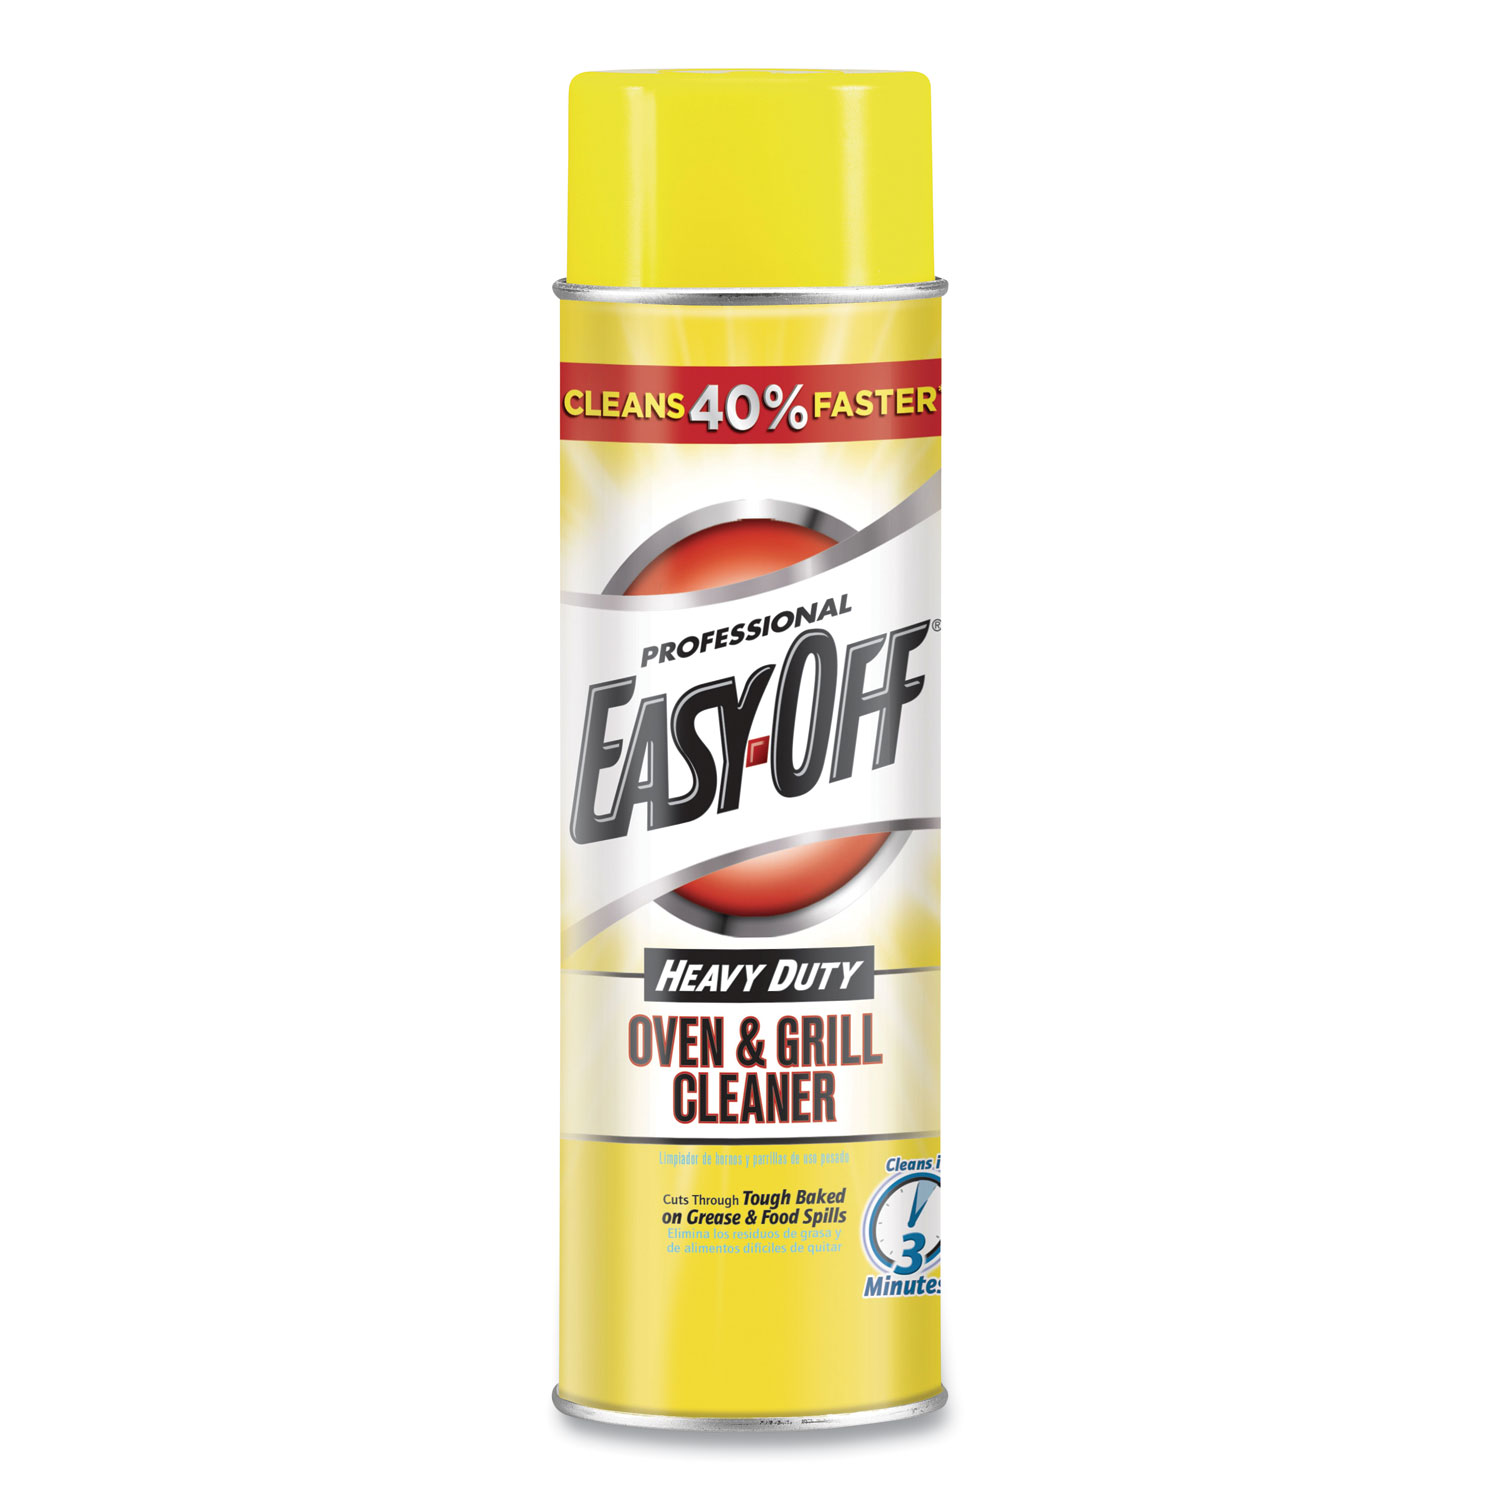 Oven and Grill Cleaner, Unscented, 24oz Aerosol